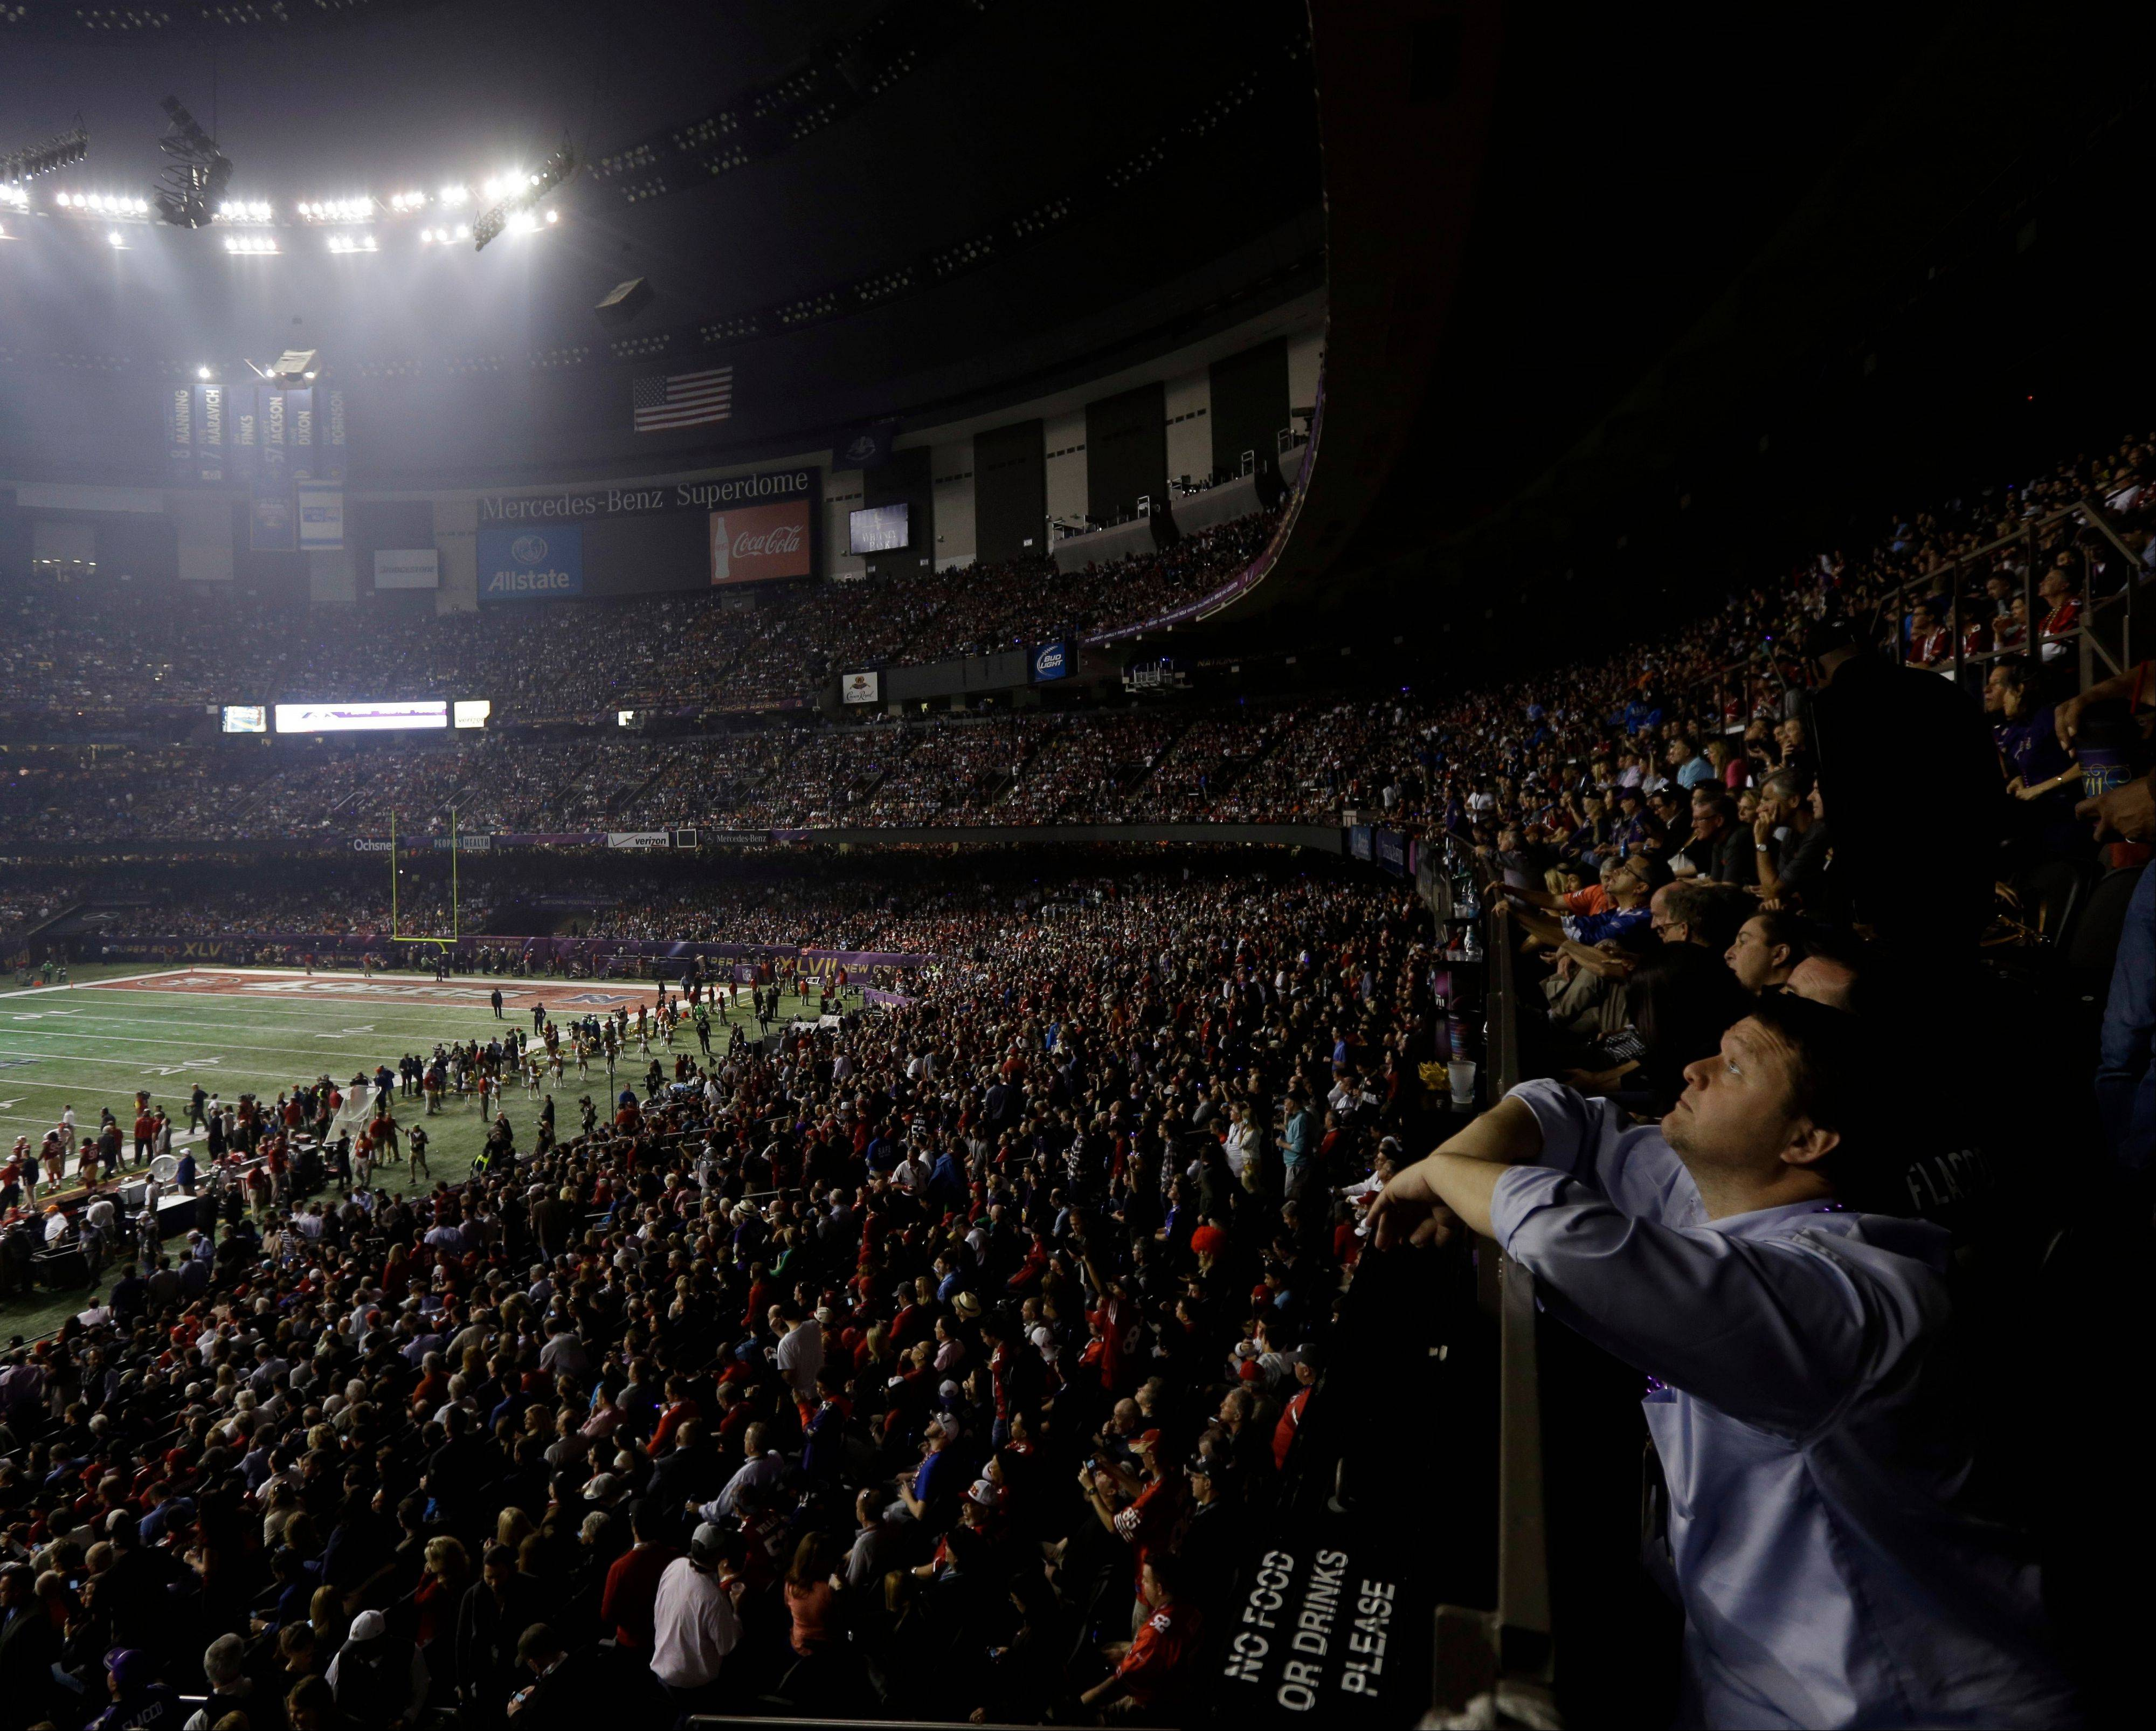 A fan looks around the Superdome after half the lights went out during a power outage in the second half of NFL Super Bowl XLVII on Sunday in New Orleans.